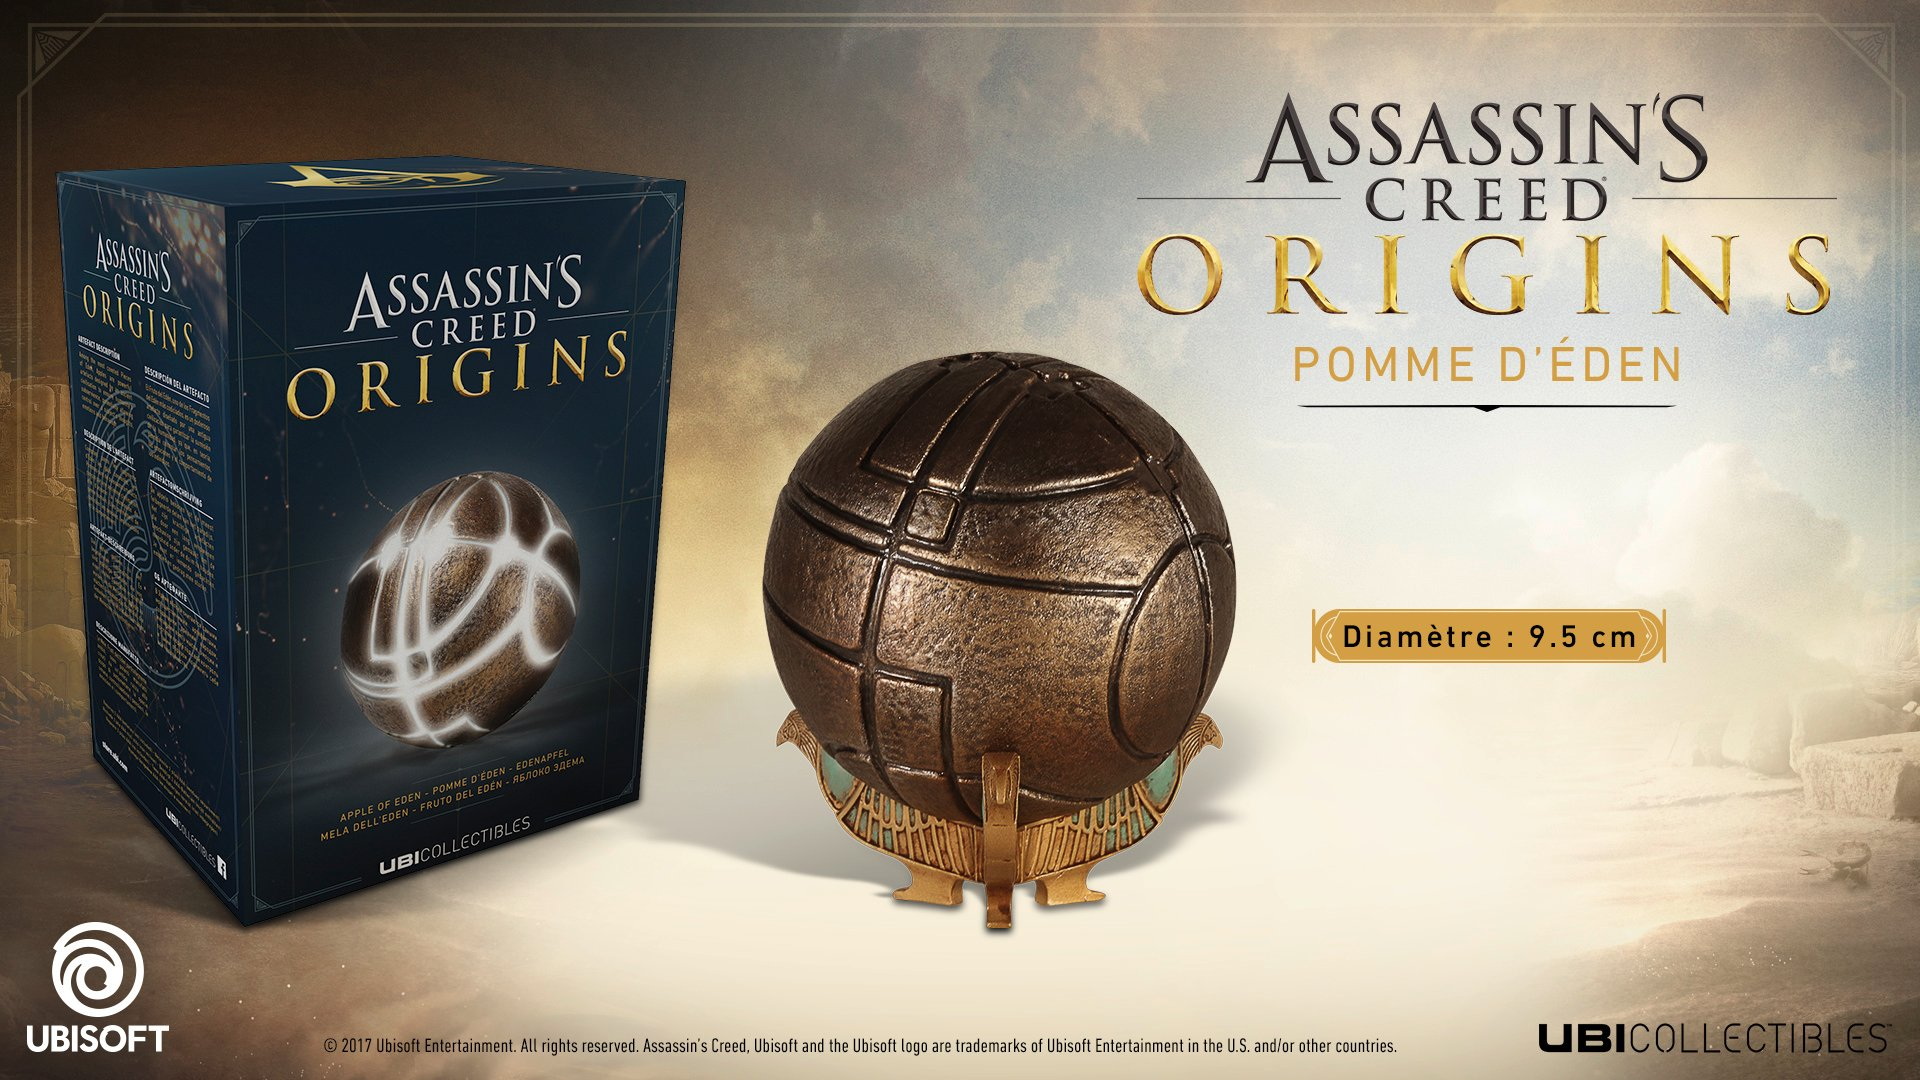 APPLE OF EDEN LED IN BOX ASSASSIN´S CREED ORIGINS// FRUTO DEL EDÉN 9 CM